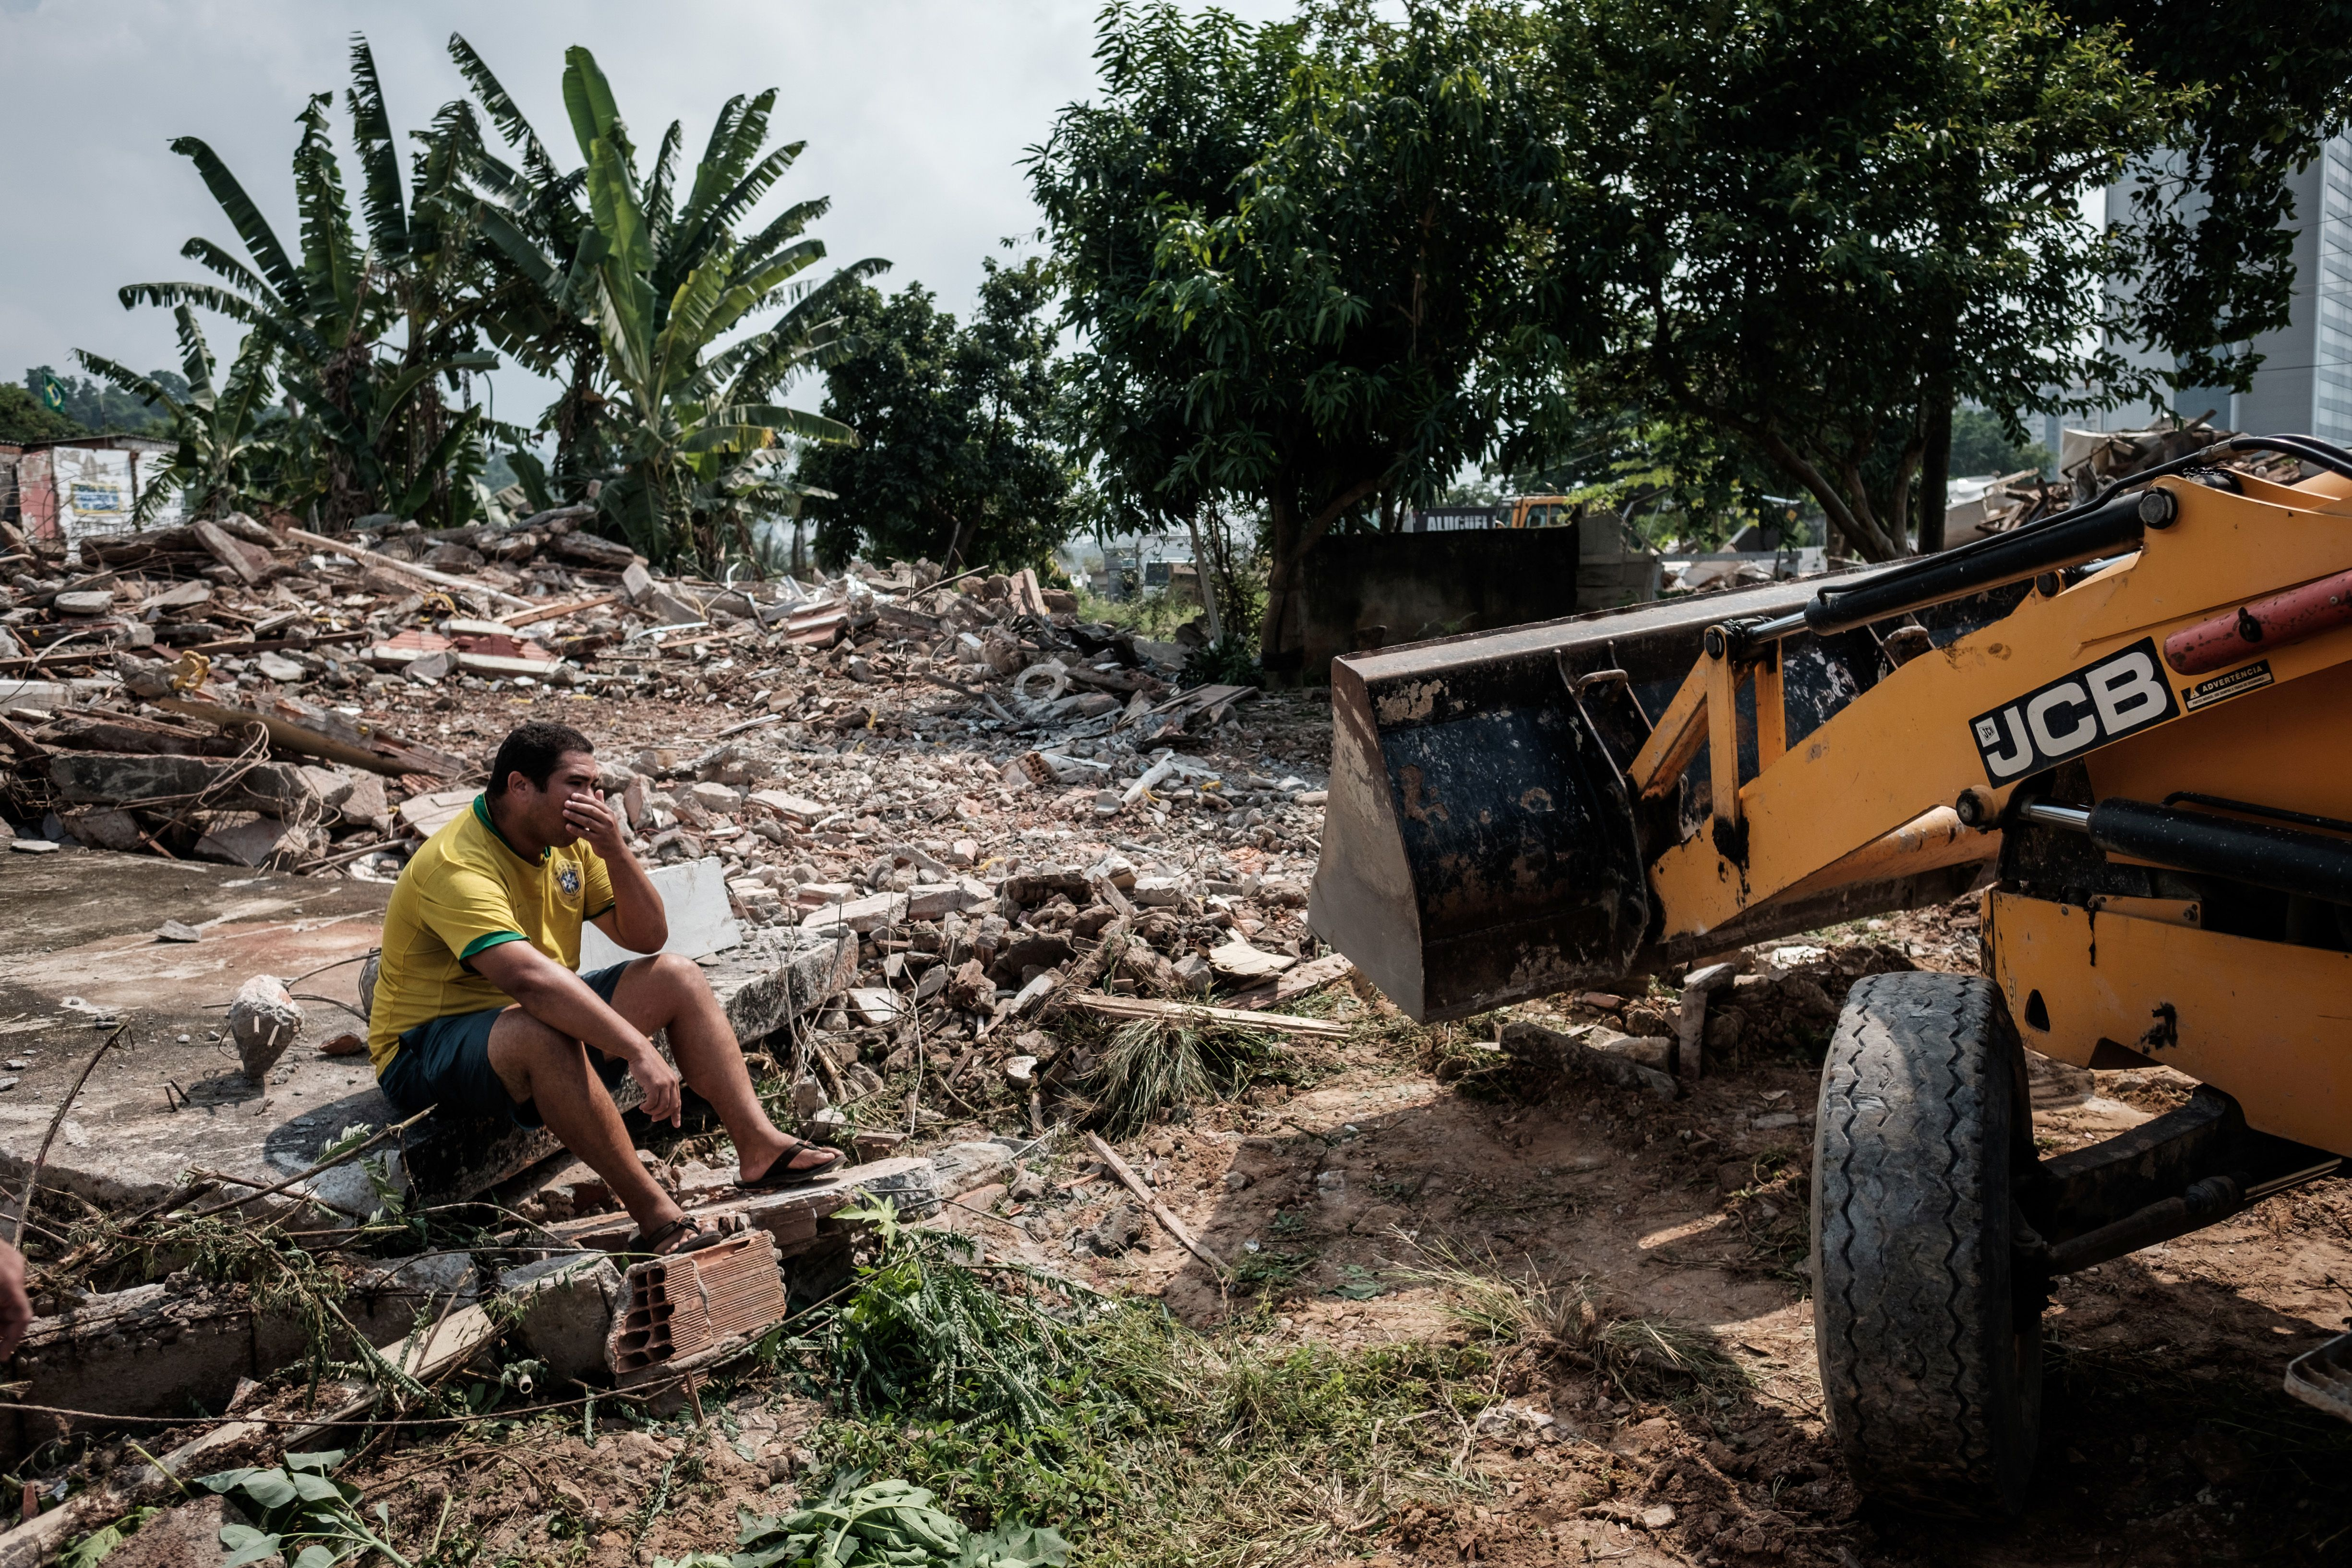 Brazilian Marcio Henrique sits on the ruins of a demolished house next door to his, at Rio de Janeiro's Vila Autodromo neighbourhood, near the construction site of the Olympic Park for the Rio 2016 Olympic Games, on March 8, 2016. Some families have refused to move out until they receive an eviction order by the municipal authorities. A passage connecting the Olympic Park and the Athletes Village is planned to be built on the site. AFP PHOTO / YASUYOSHI CHIBA / AFP / YASUYOSHI CHIBA (Photo credit should read YASUYOSHI CHIBA/AFP/Getty Images)